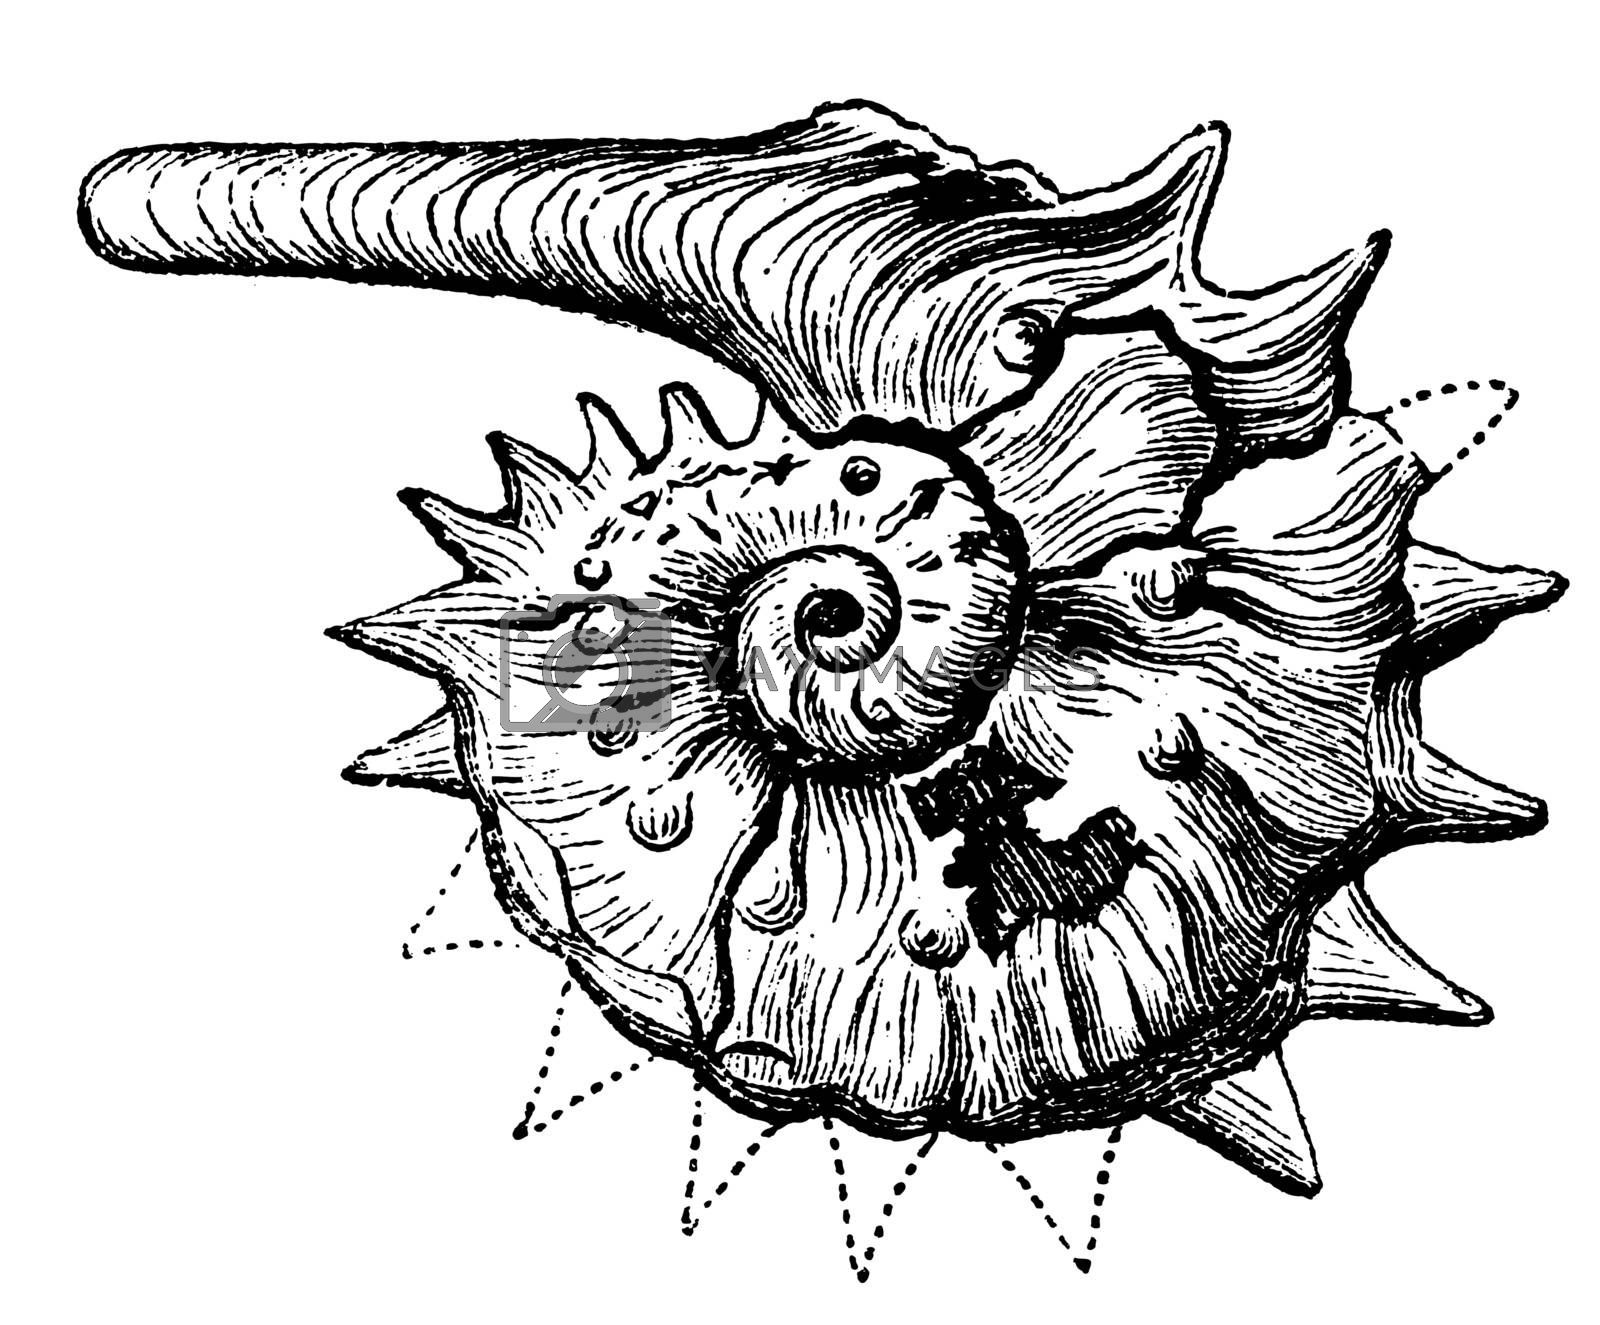 Ammonite fossil vintage engraving. Extinct group of marine invertebrate, similar to the Nautilius. Vector illustration, isolated cut-out.